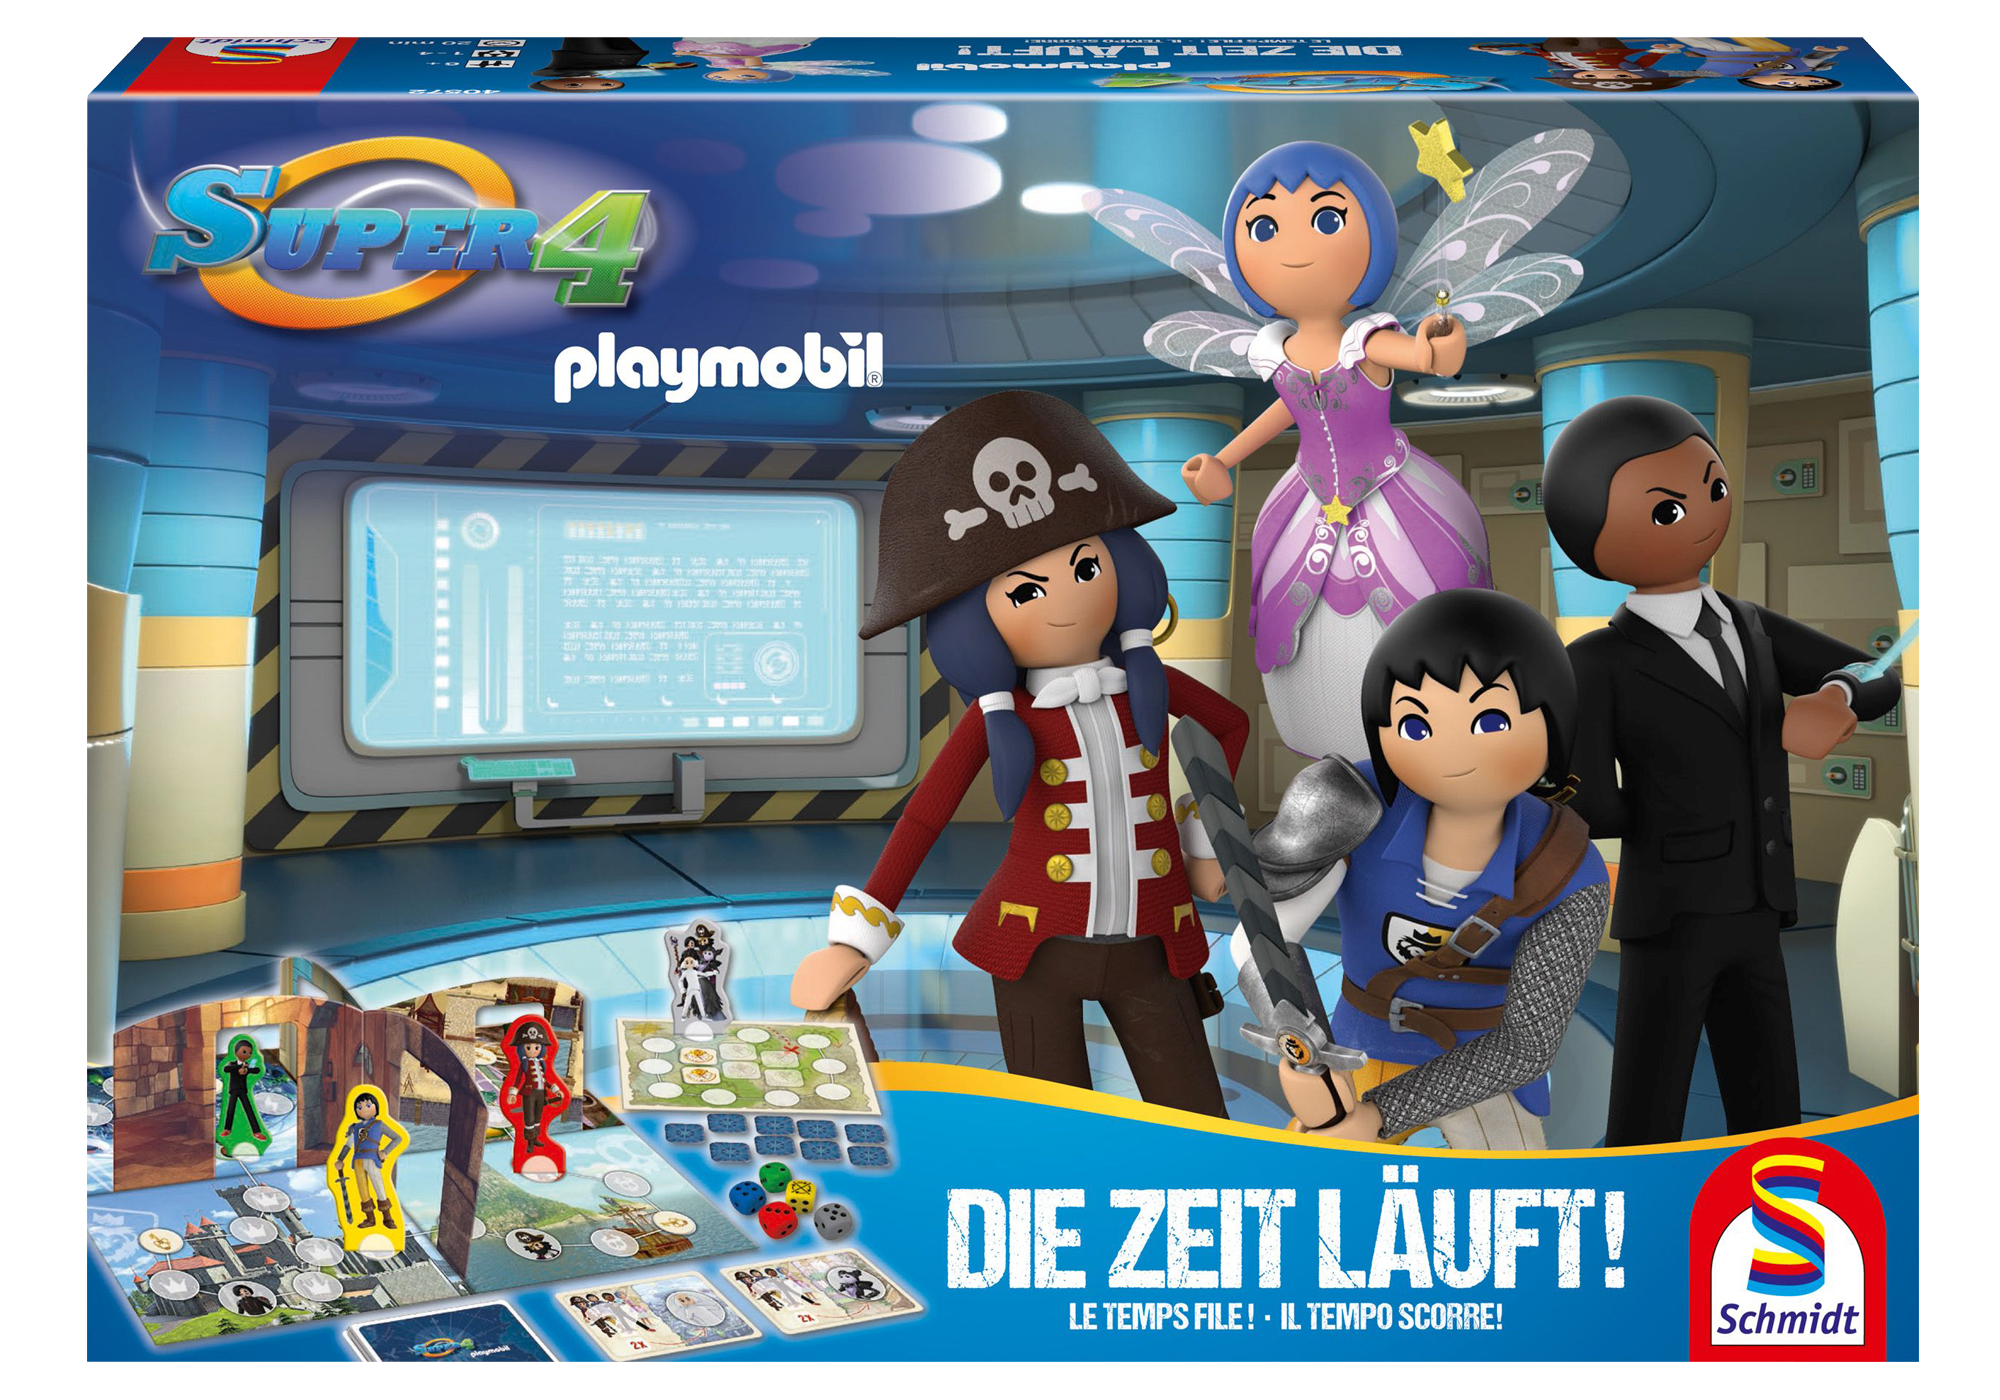 http://media.playmobil.com/i/playmobil/80705_product_detail